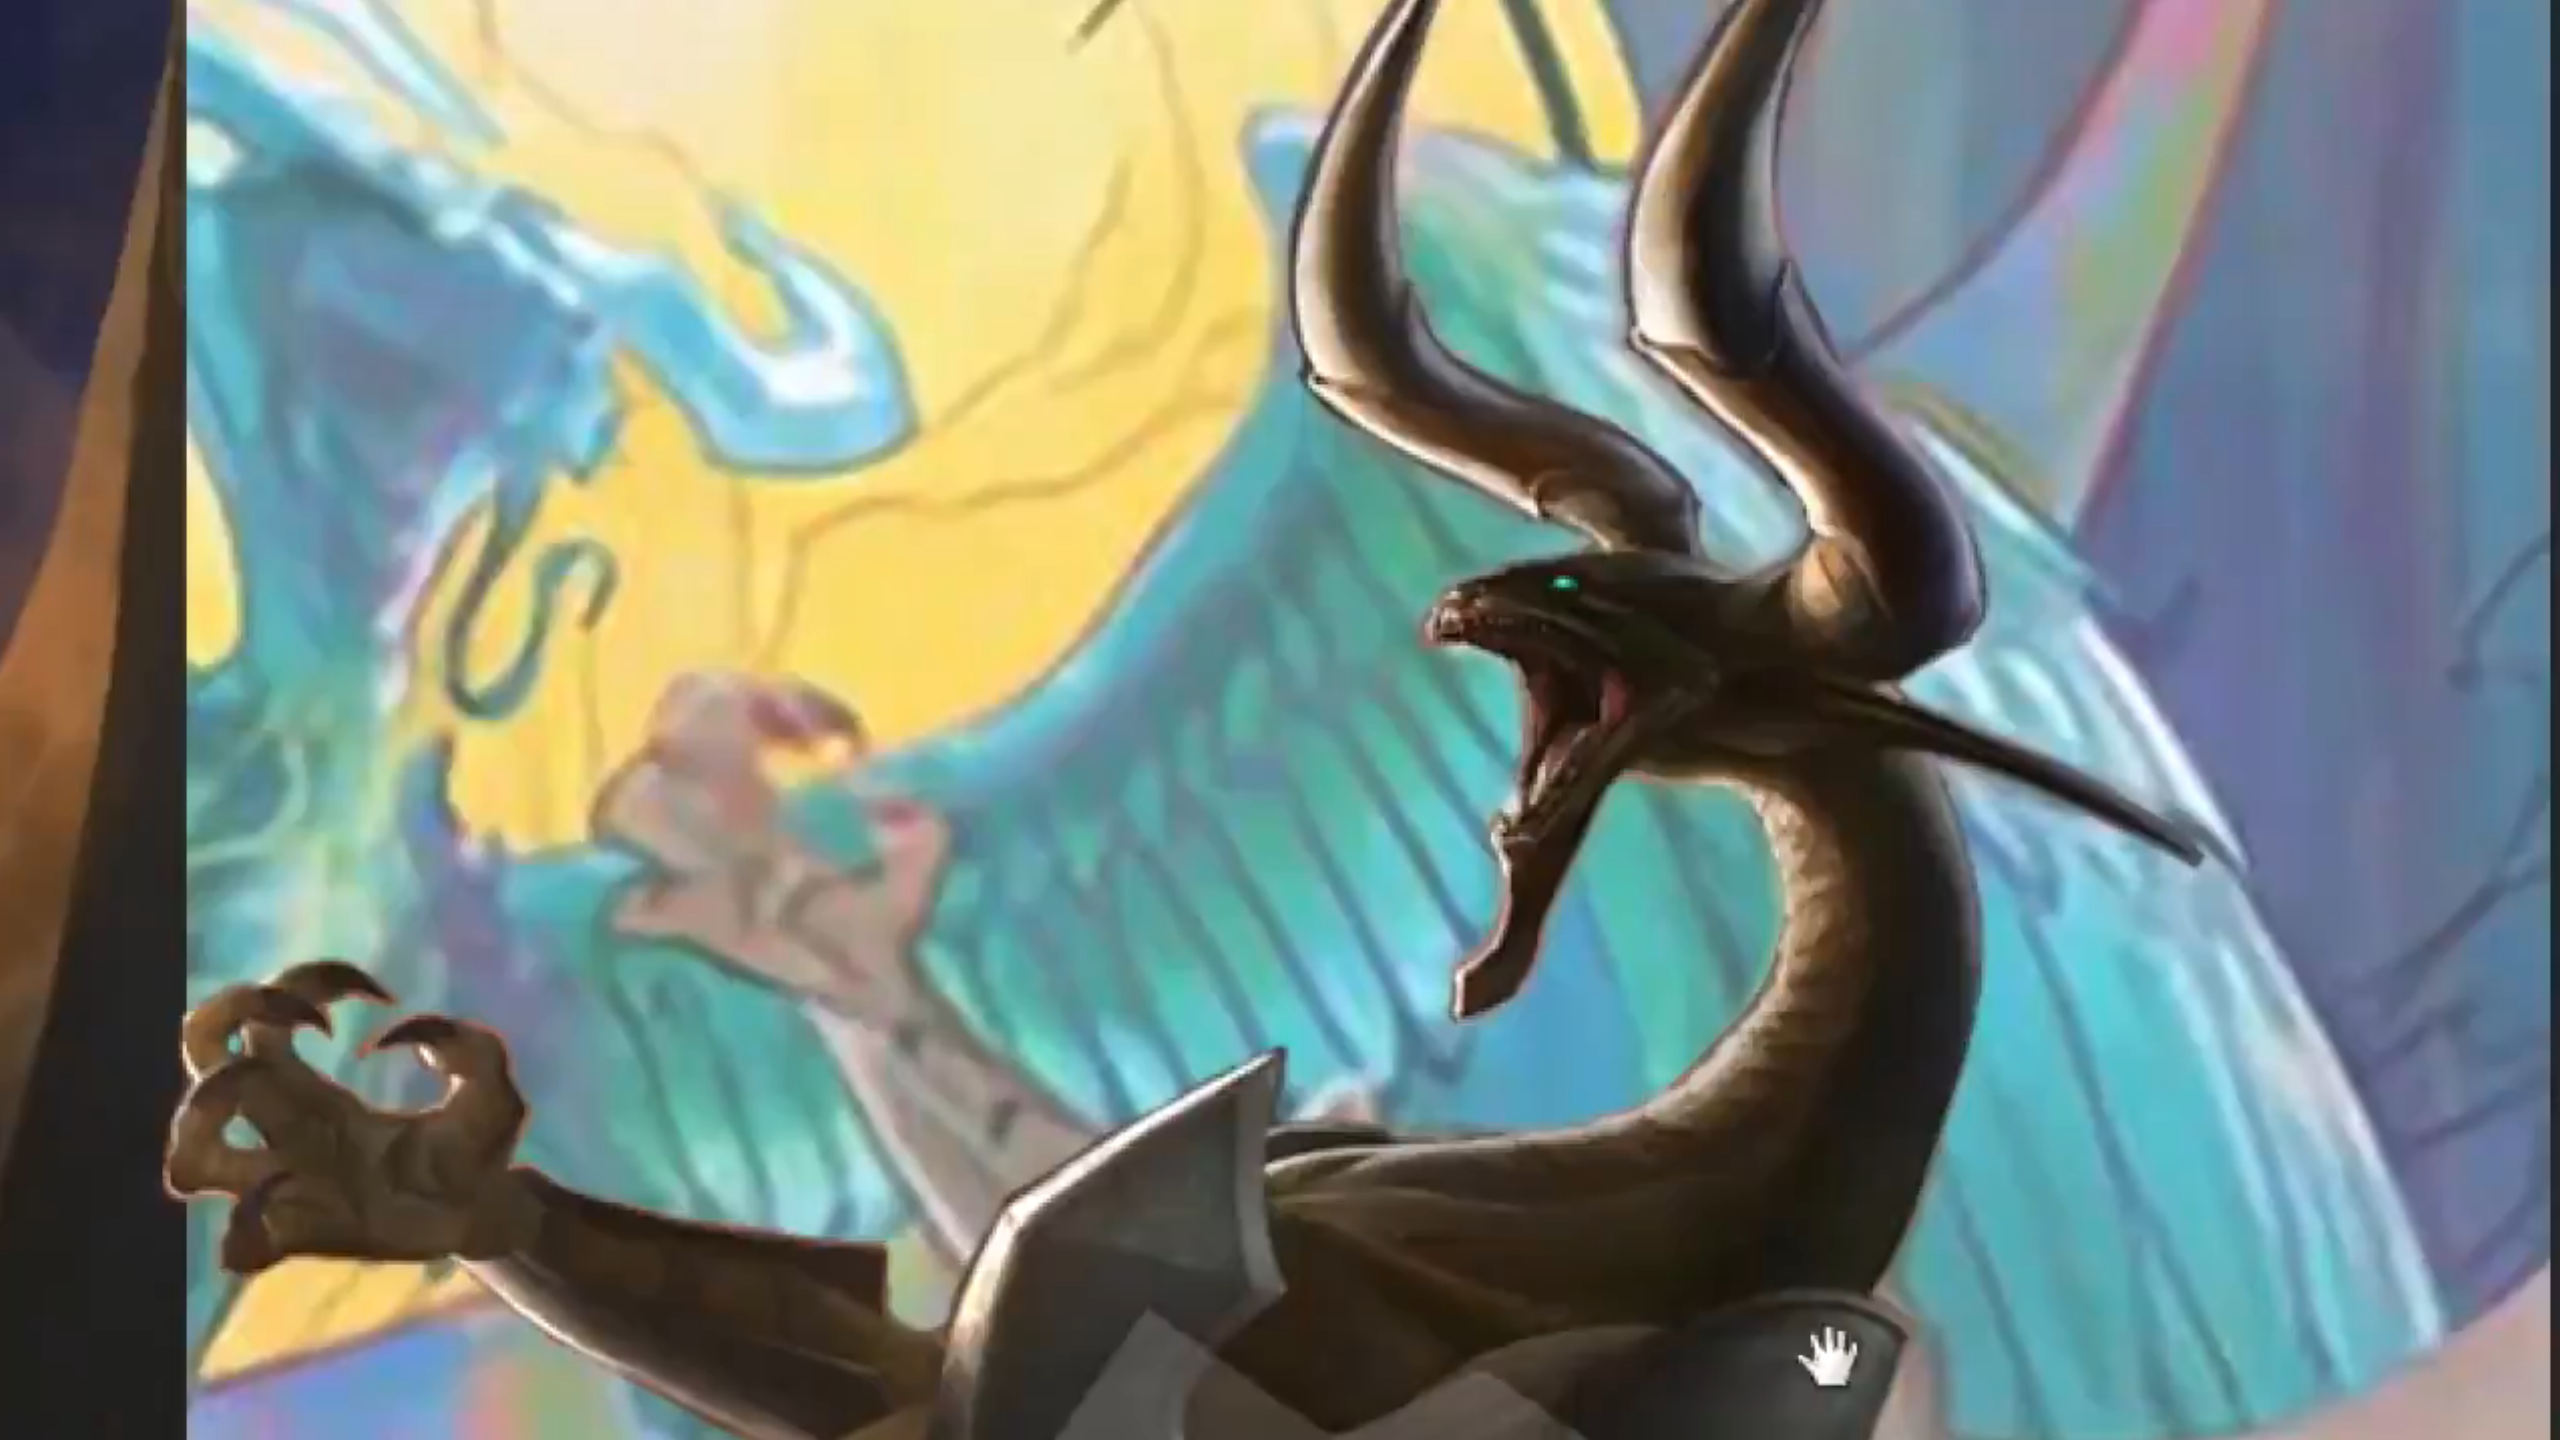 A new Magic: The Gathering card may include plagiarized art